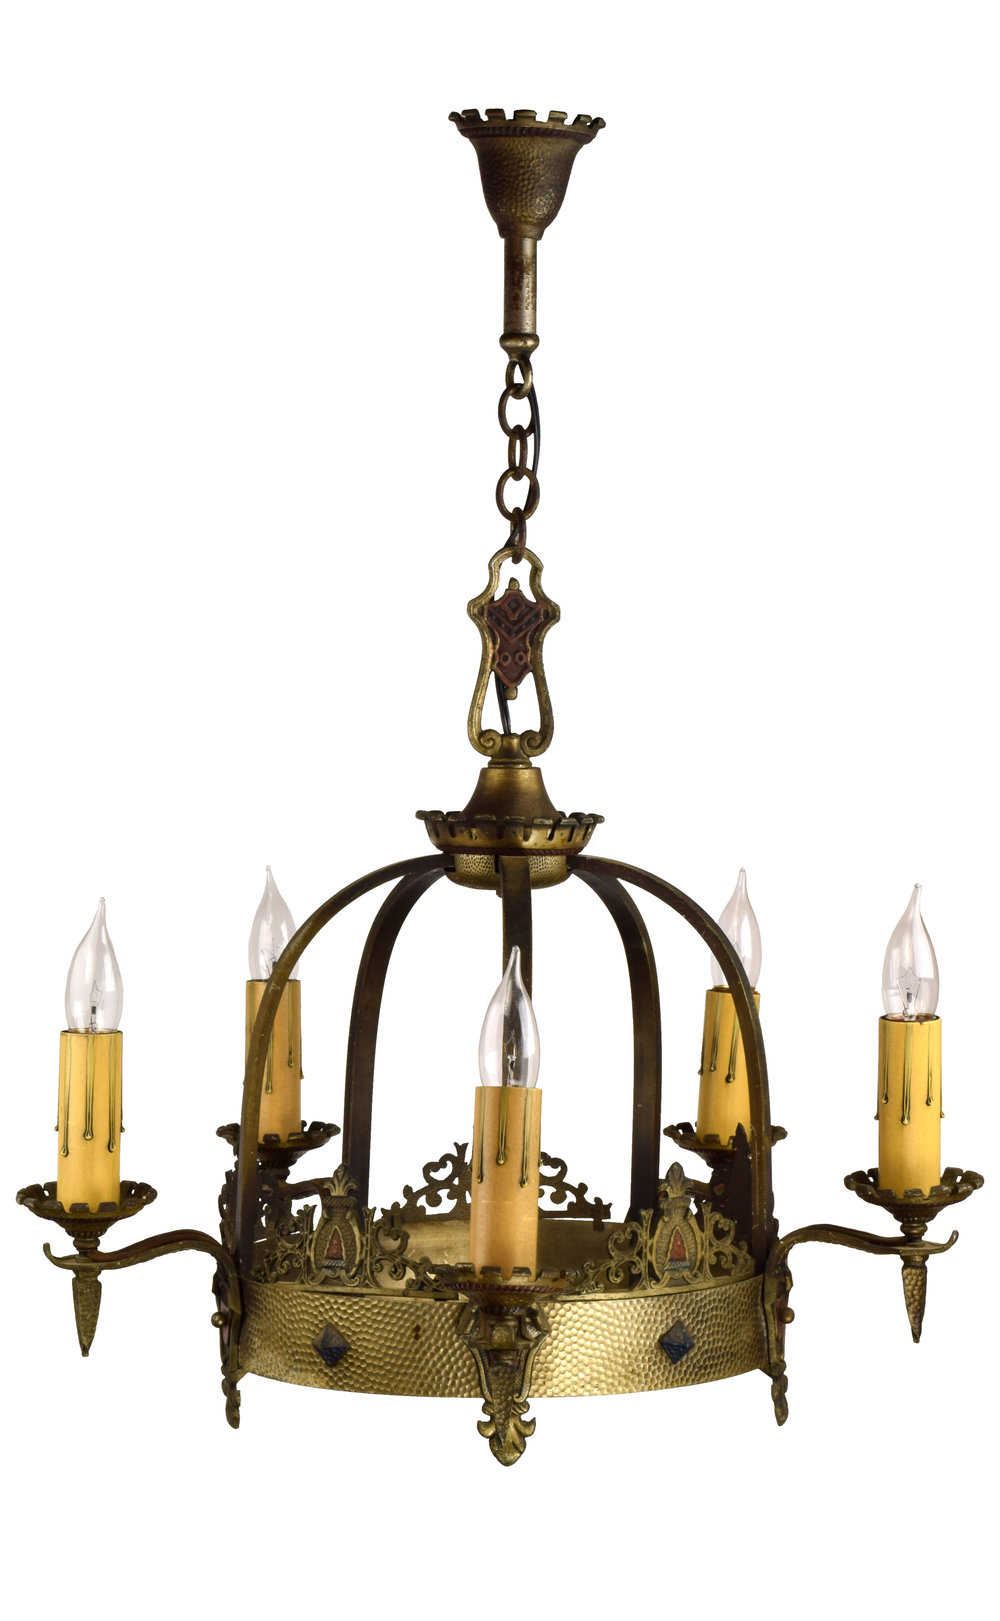 46984 five ring candle chandelier MAIN.jpg